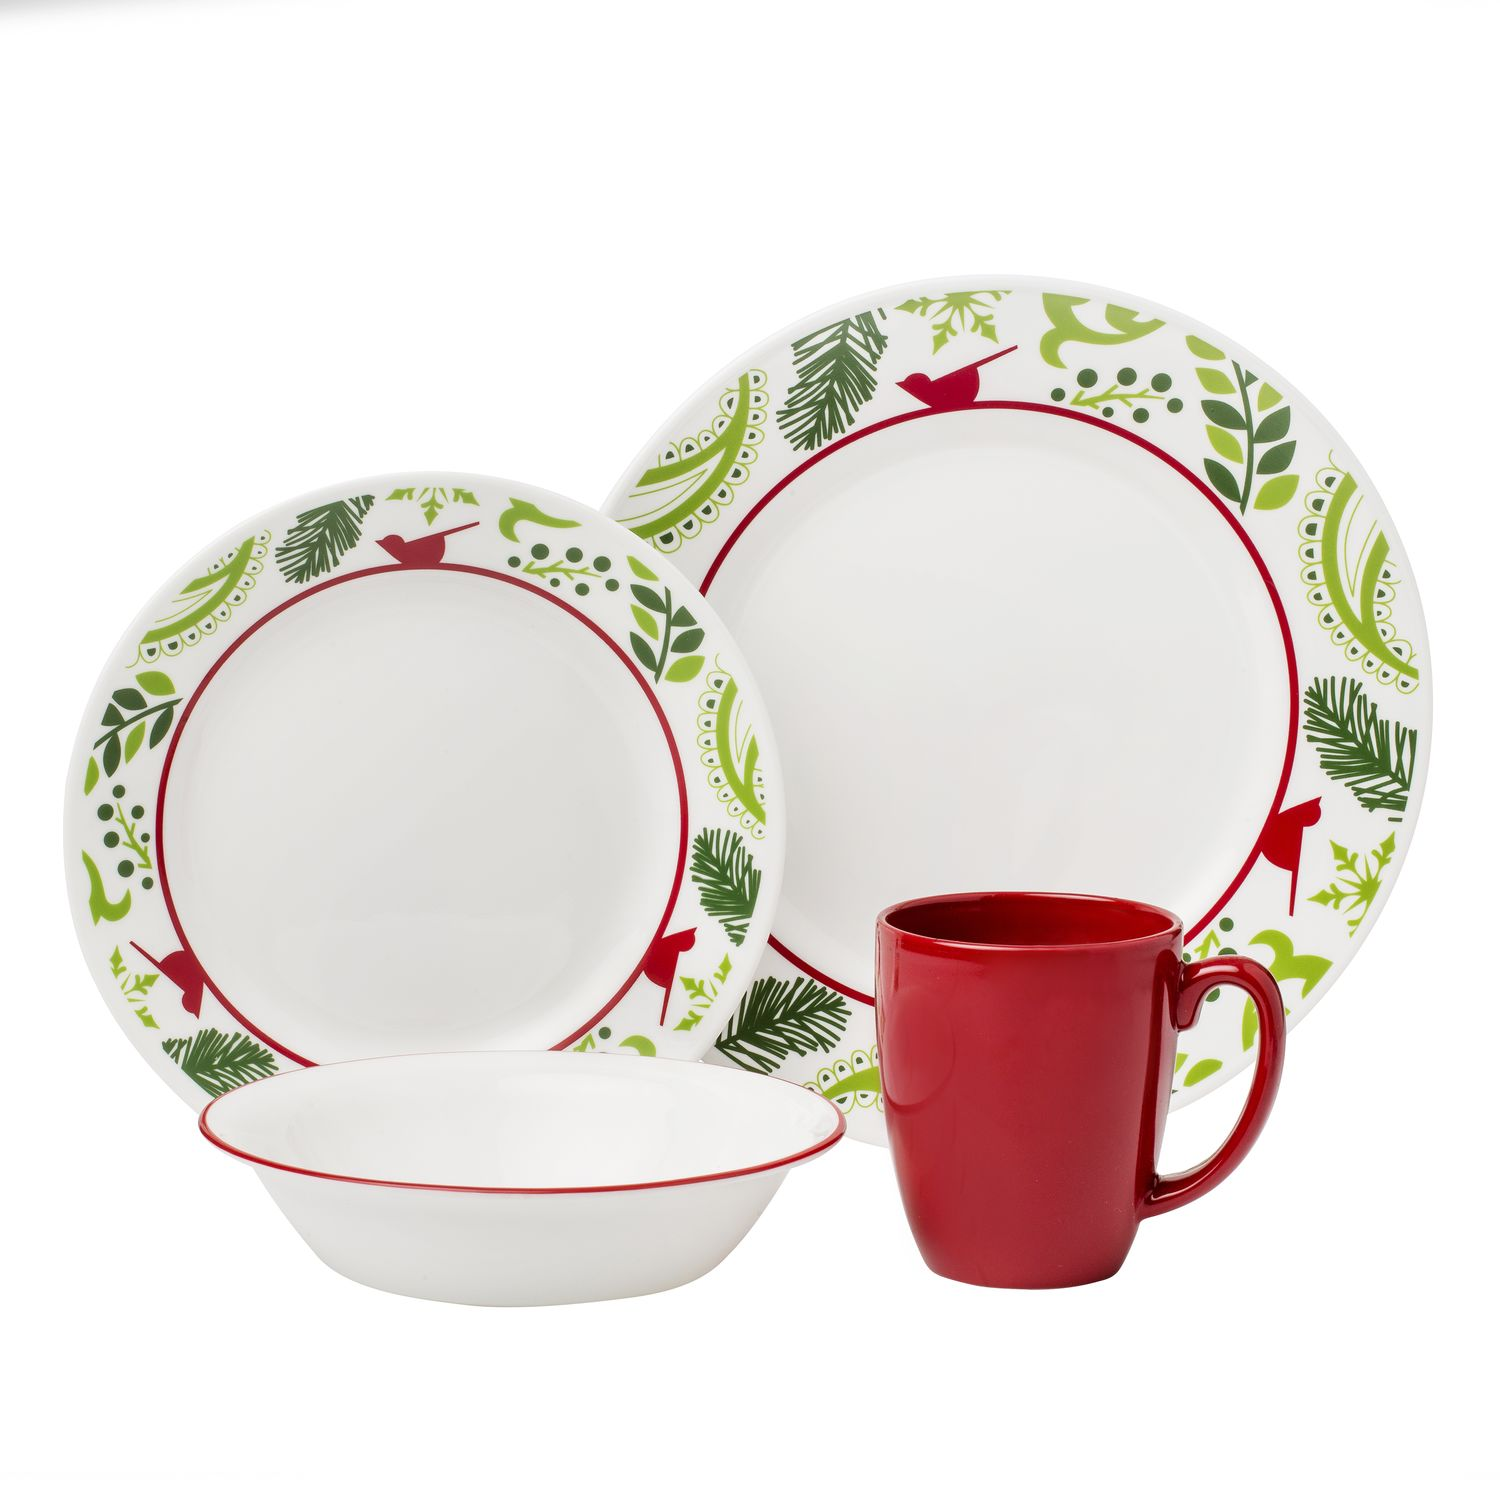 Impressions Birds \u0026 Boughs 16-pc Dinnerware Set  sc 1 st  Designer Dinnerware Sets & Impressions Birds \u0026 Boughs 16-pc Dinnerware Set Review | Corelle ...